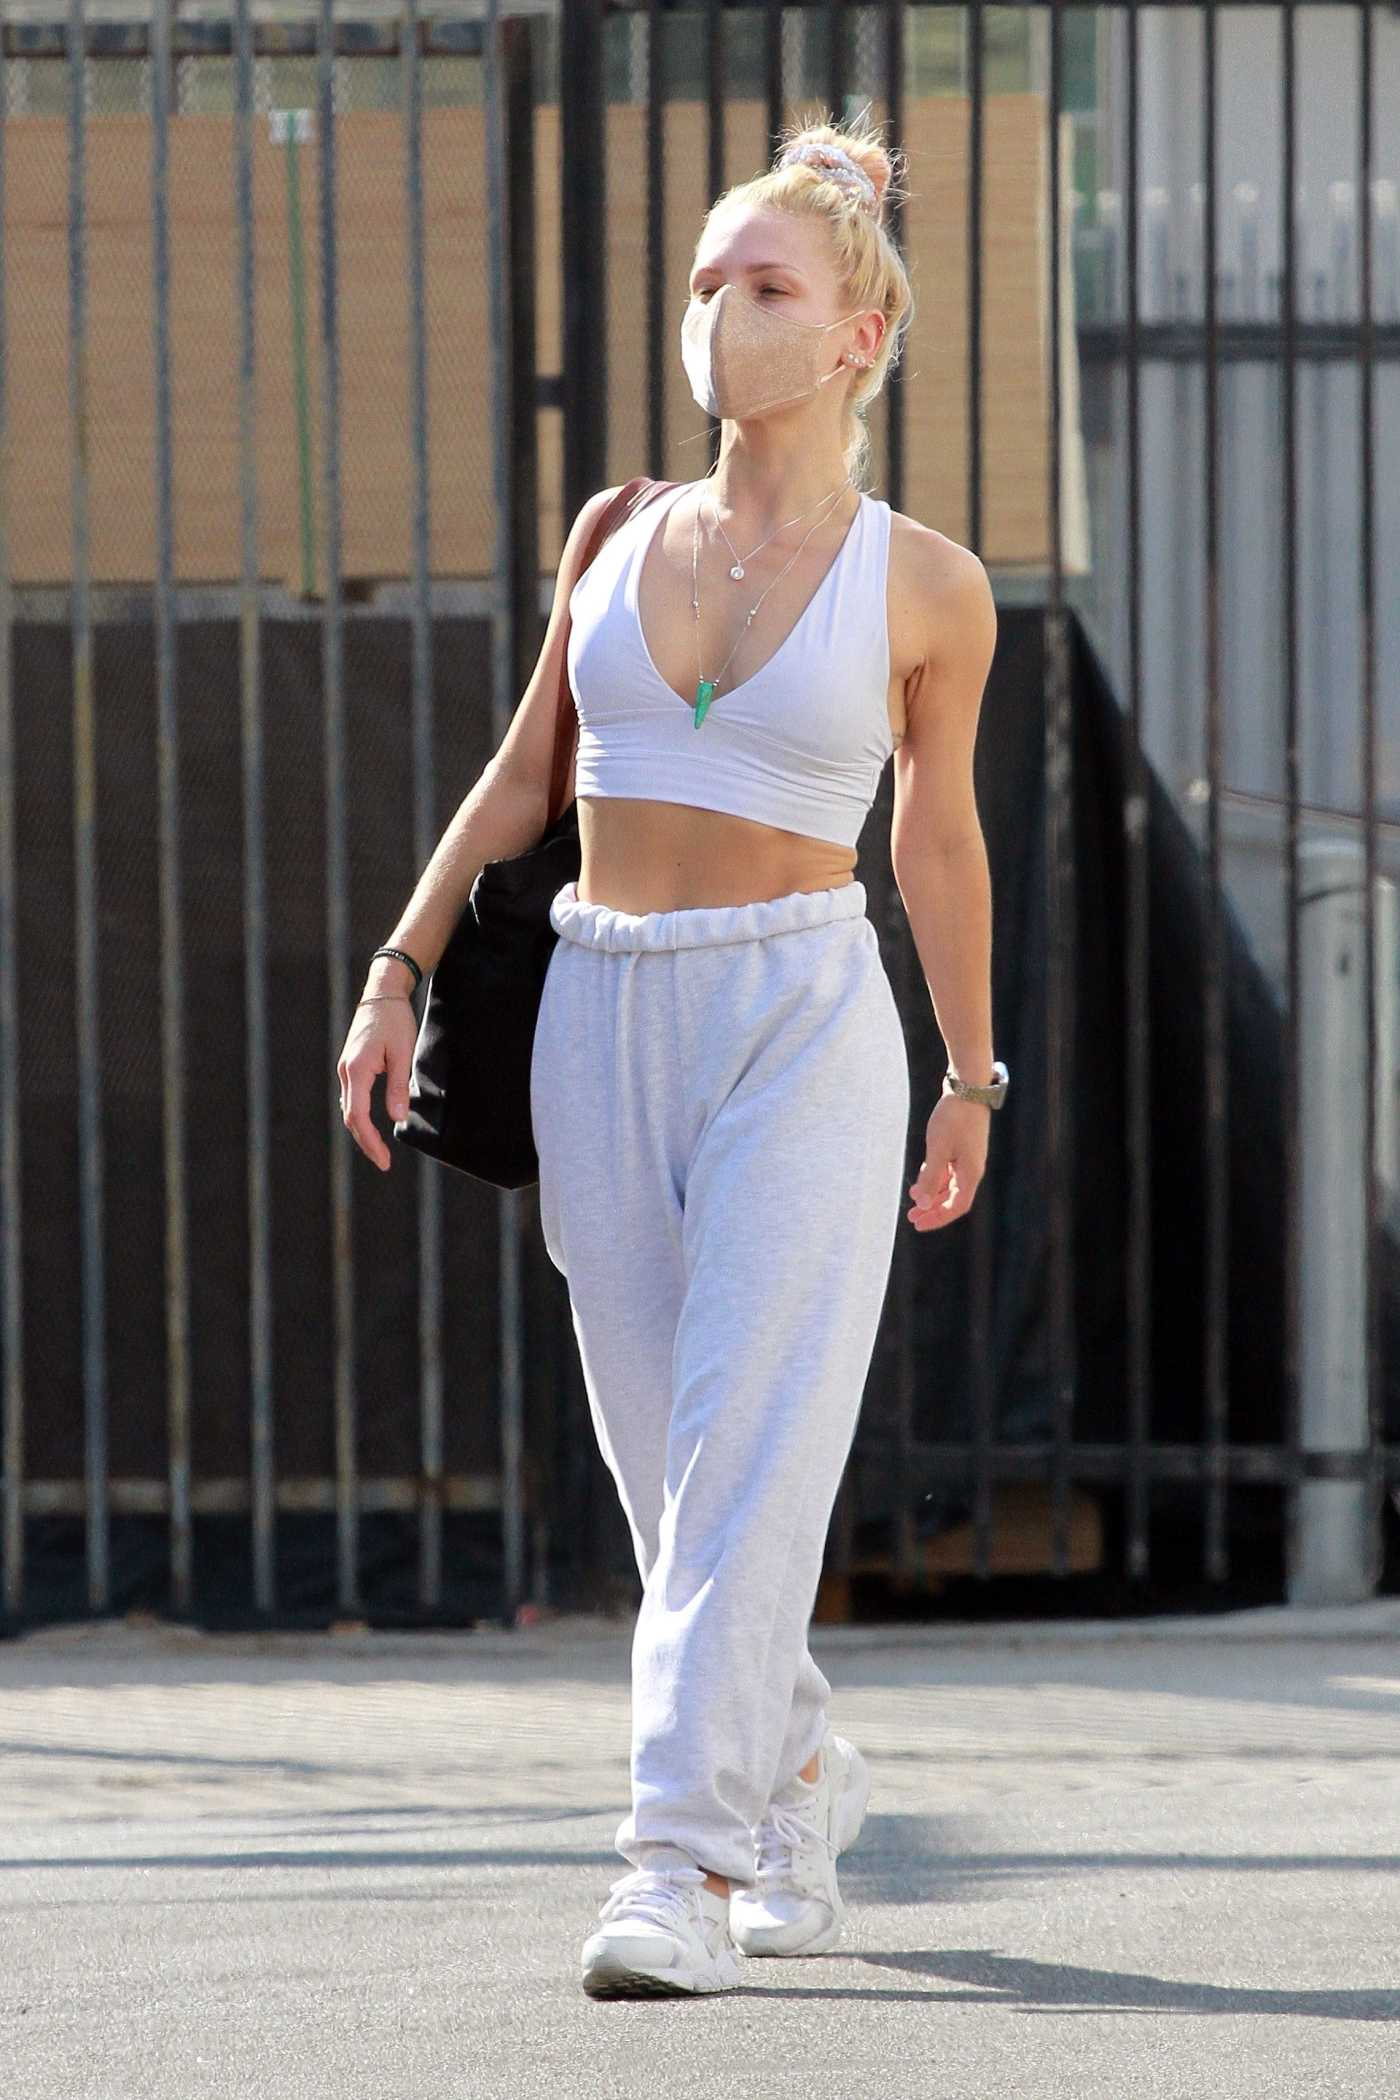 Sharna Burgess in a White Top Heads Into the DWTS Studio in Los Angeles 10/03/2020